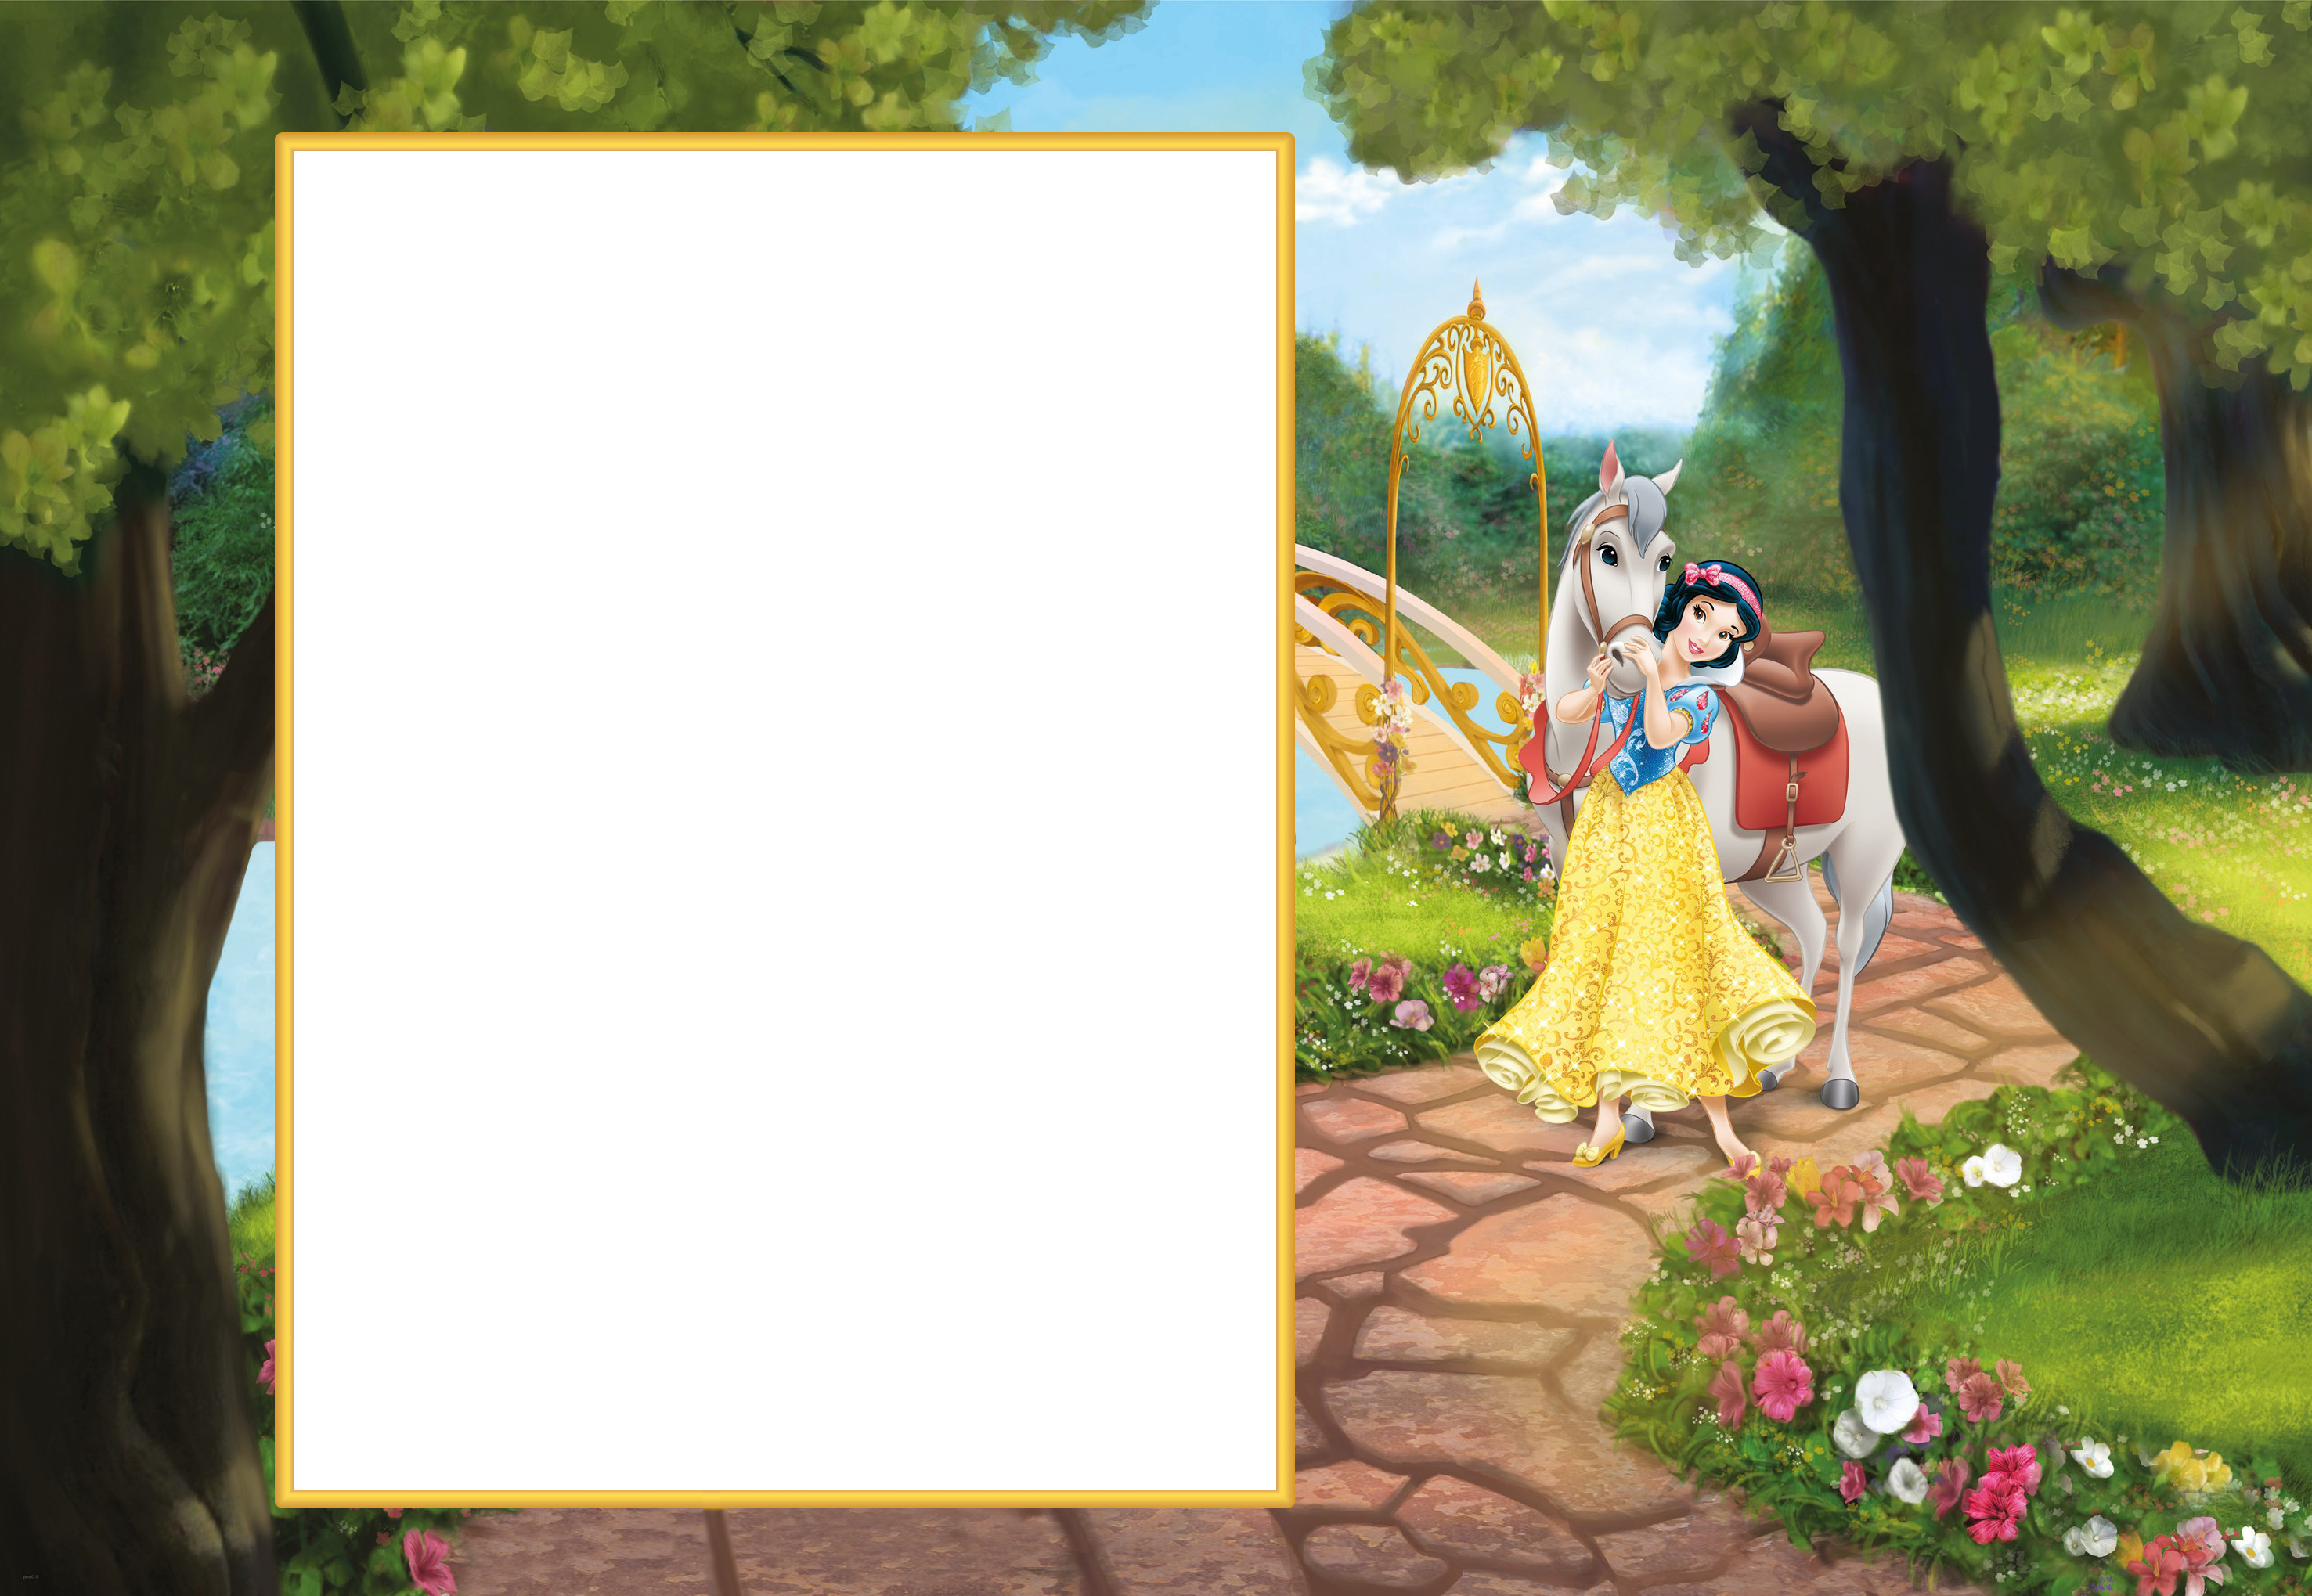 Pumba And Timon Transparen Kids Png Photo Frame: Princess Snow White Cute Transparent PNG Frame